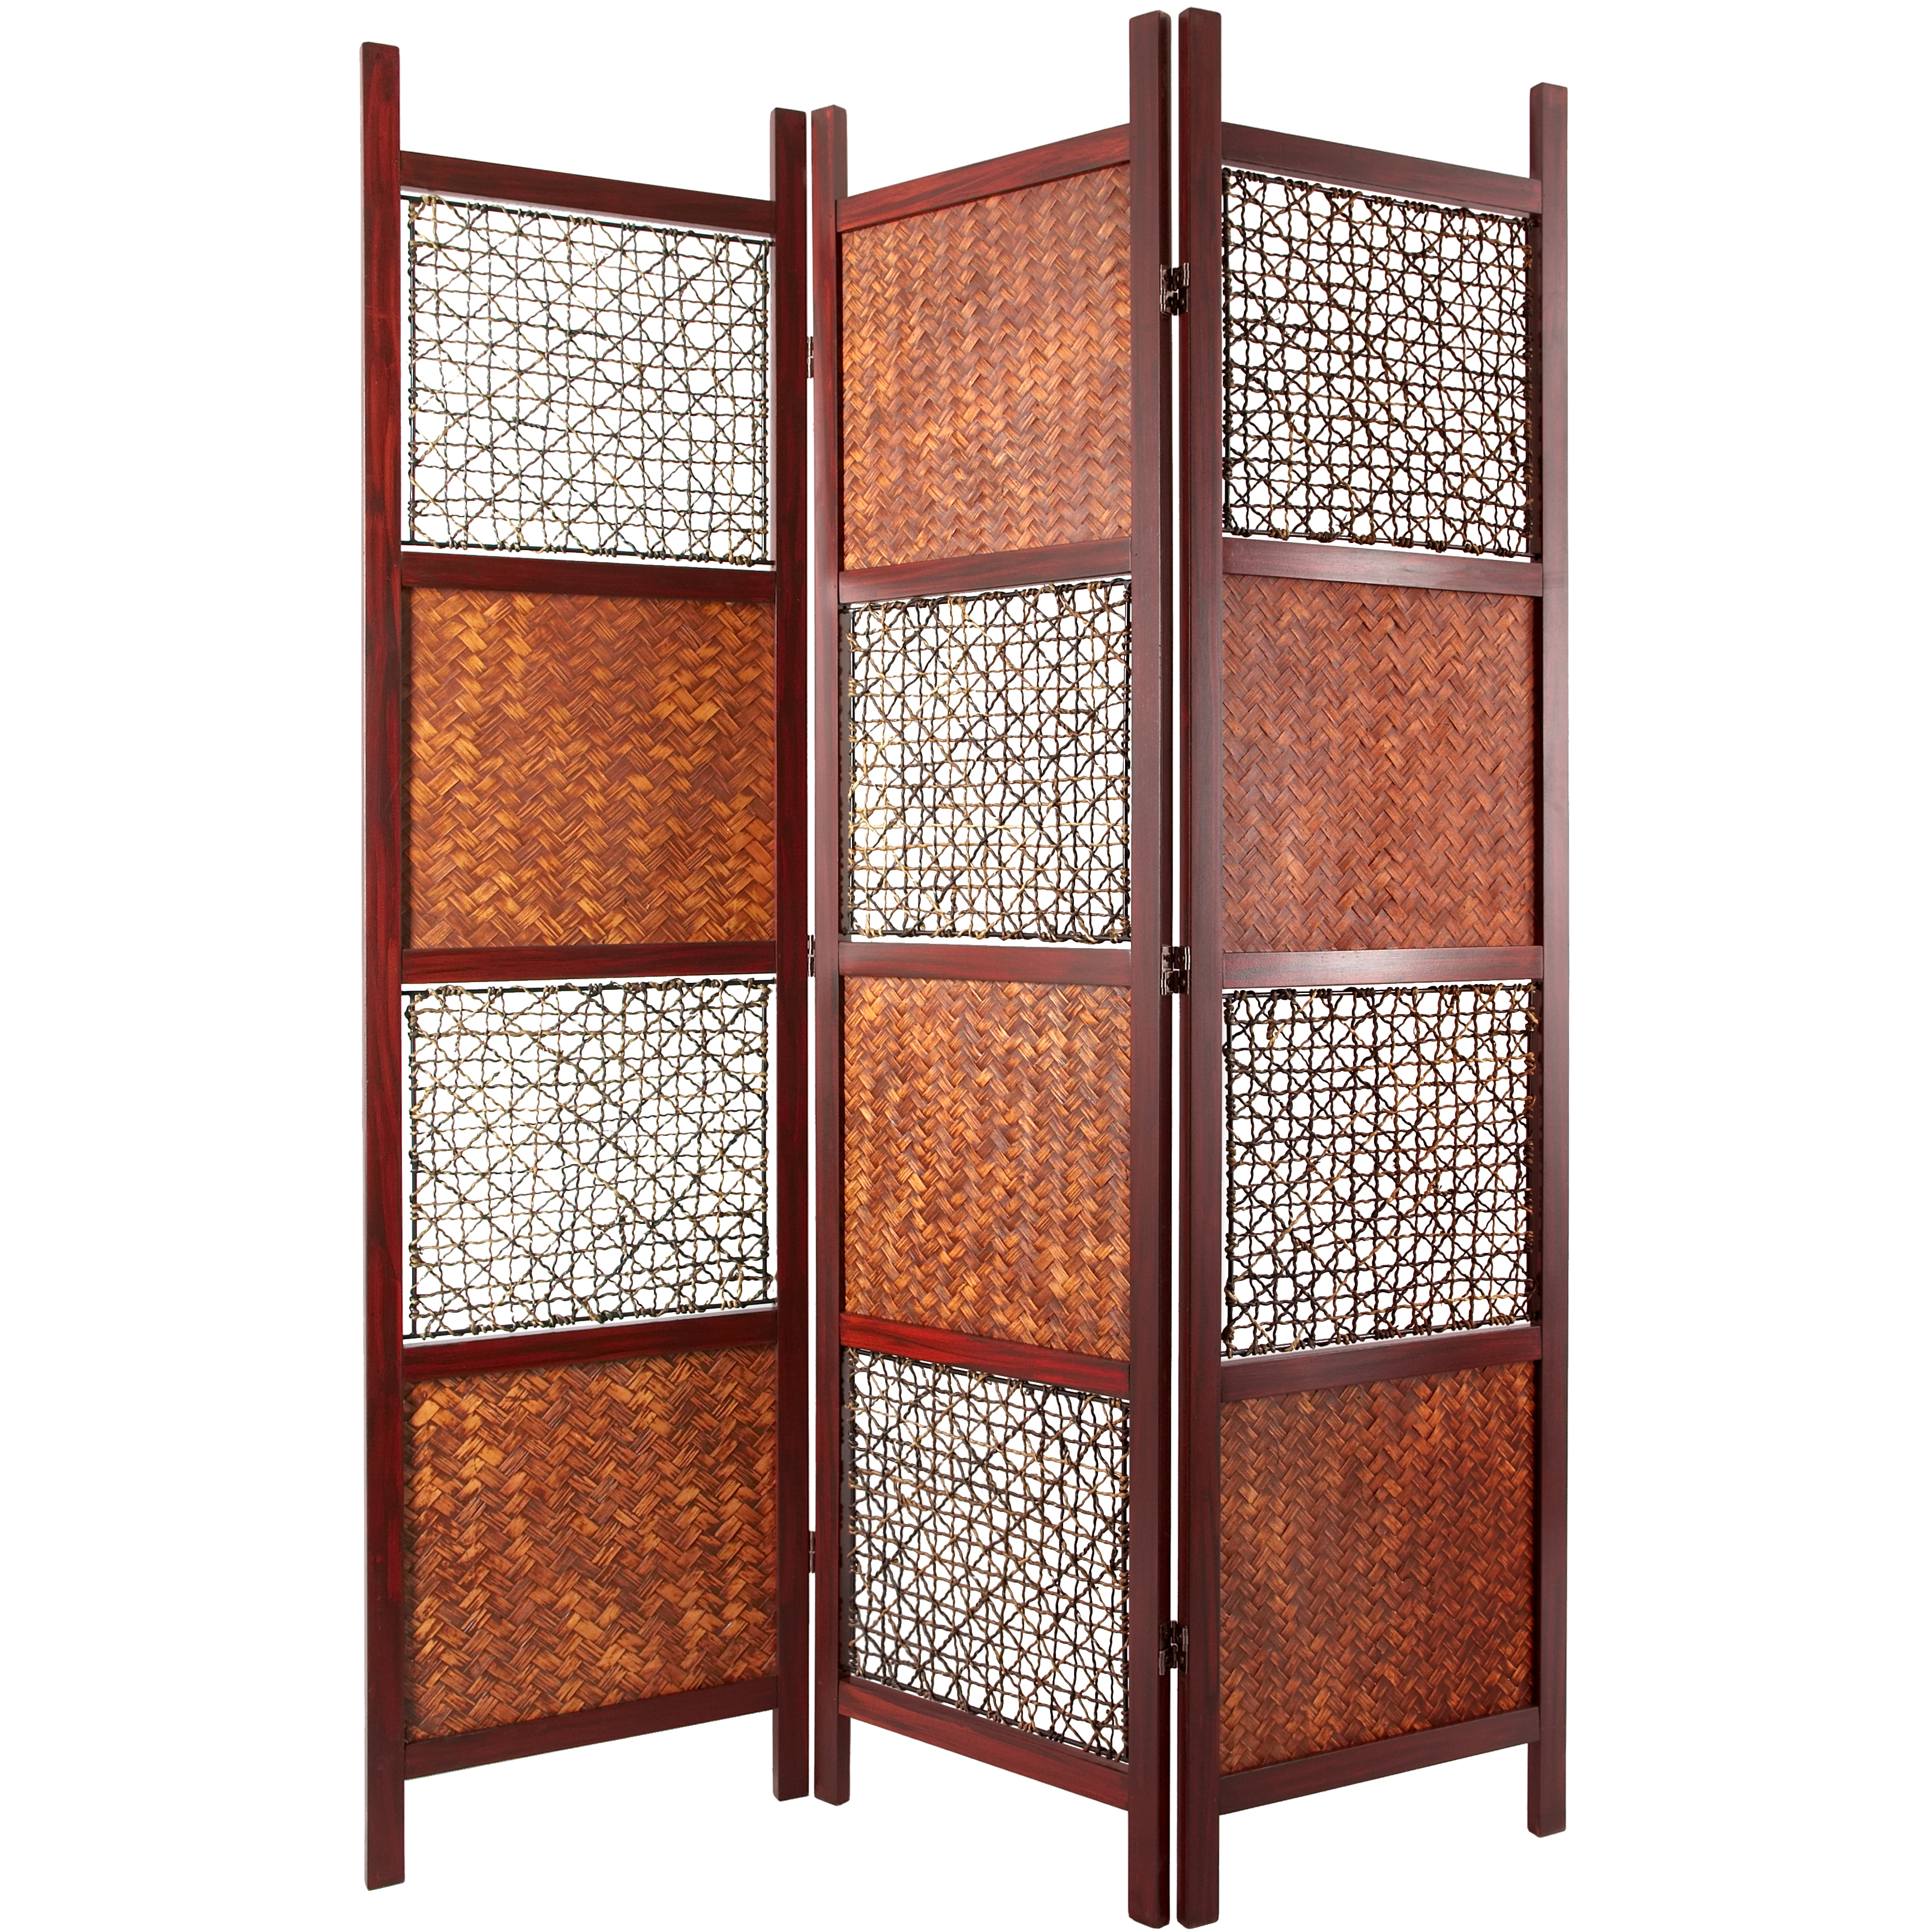 Buy 6 Ft Tall Bamboo Leaf Room Divider Online (ssbamleaf. Allison Ramsey Architects. Rustic Jewelry Armoire. Free Standing Pergola. Custom Home Builders Austin. Kraftmaid Reviews. Top Down Bottom Up Roman Shades. French Country Dining Table. Climate Controlled Storage Shed